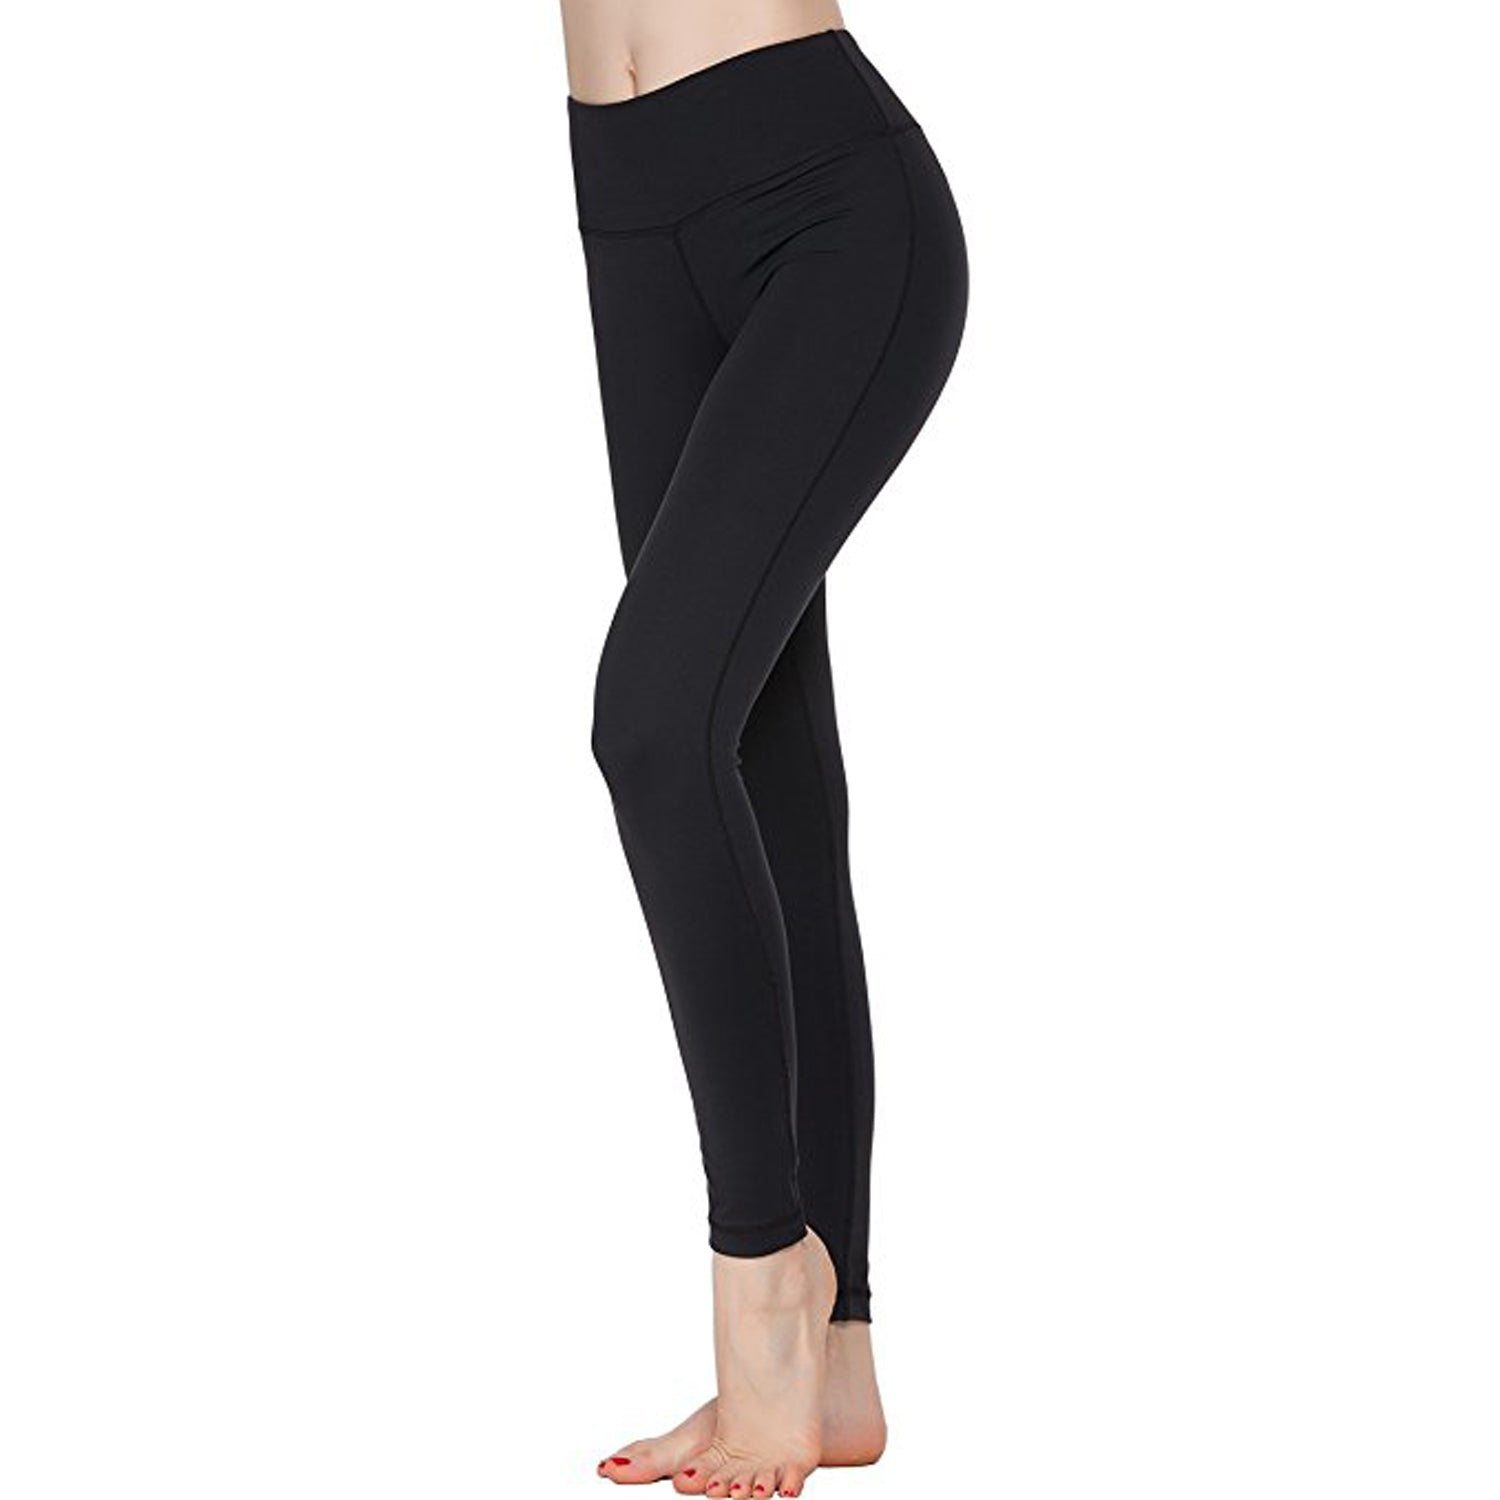 Women Power Flex Yoga Pants Workout Running Leggings - Perfect for everyday use - Everyday Crosstrain